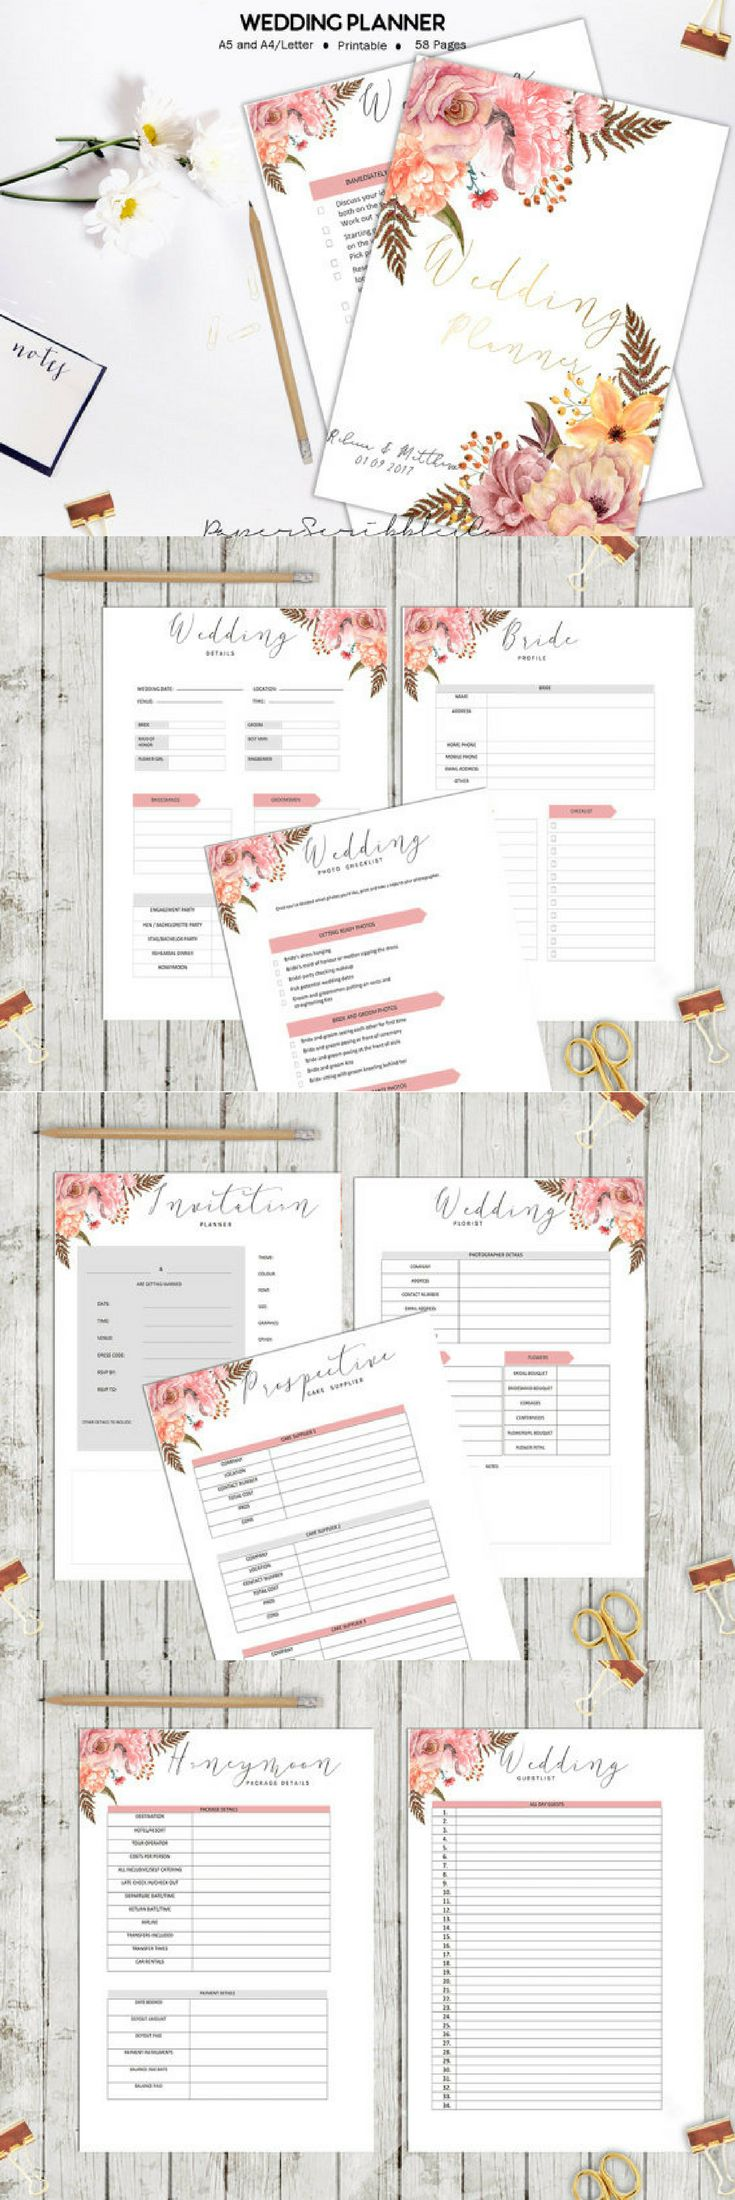 Wedding Planner | Printable Wedding Organiser | Wedding Binder | Wedding Book | Printable Wedding | DIY Wedding | Printable Planner #ad #weddings #weddinginspiration #weddingplanner #weddingplanning #planner #planning #planneraddict #plannerlove #plannercommunity #plannergirl #printable #download #downloadandprint #pdf